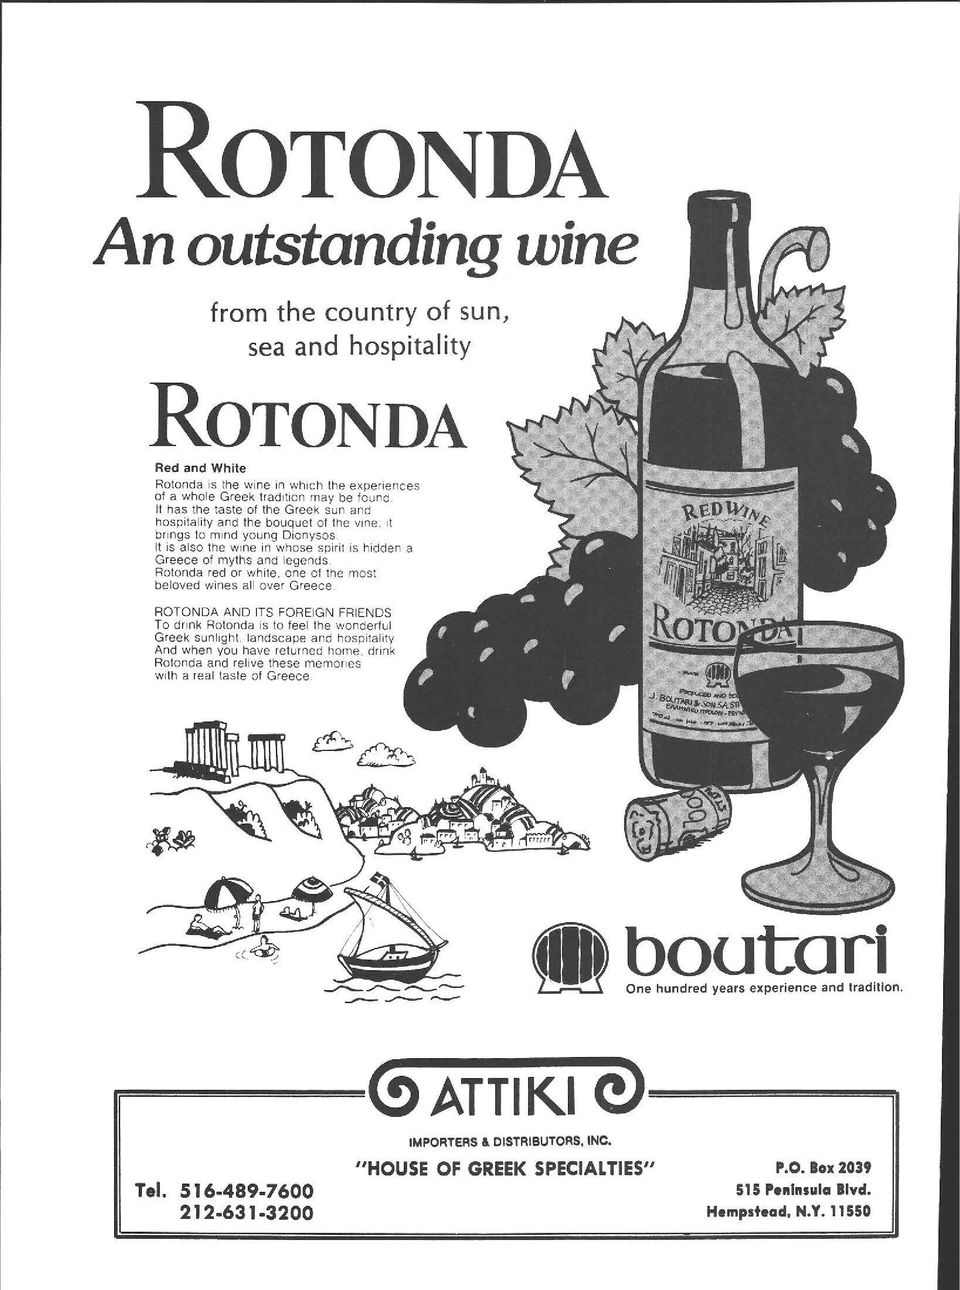 lt is also the w ι ne in whose spirit is hidden a Greece of myths and Ι egends. Rotonda red or white. one οι the most beloved wines all over Greece.